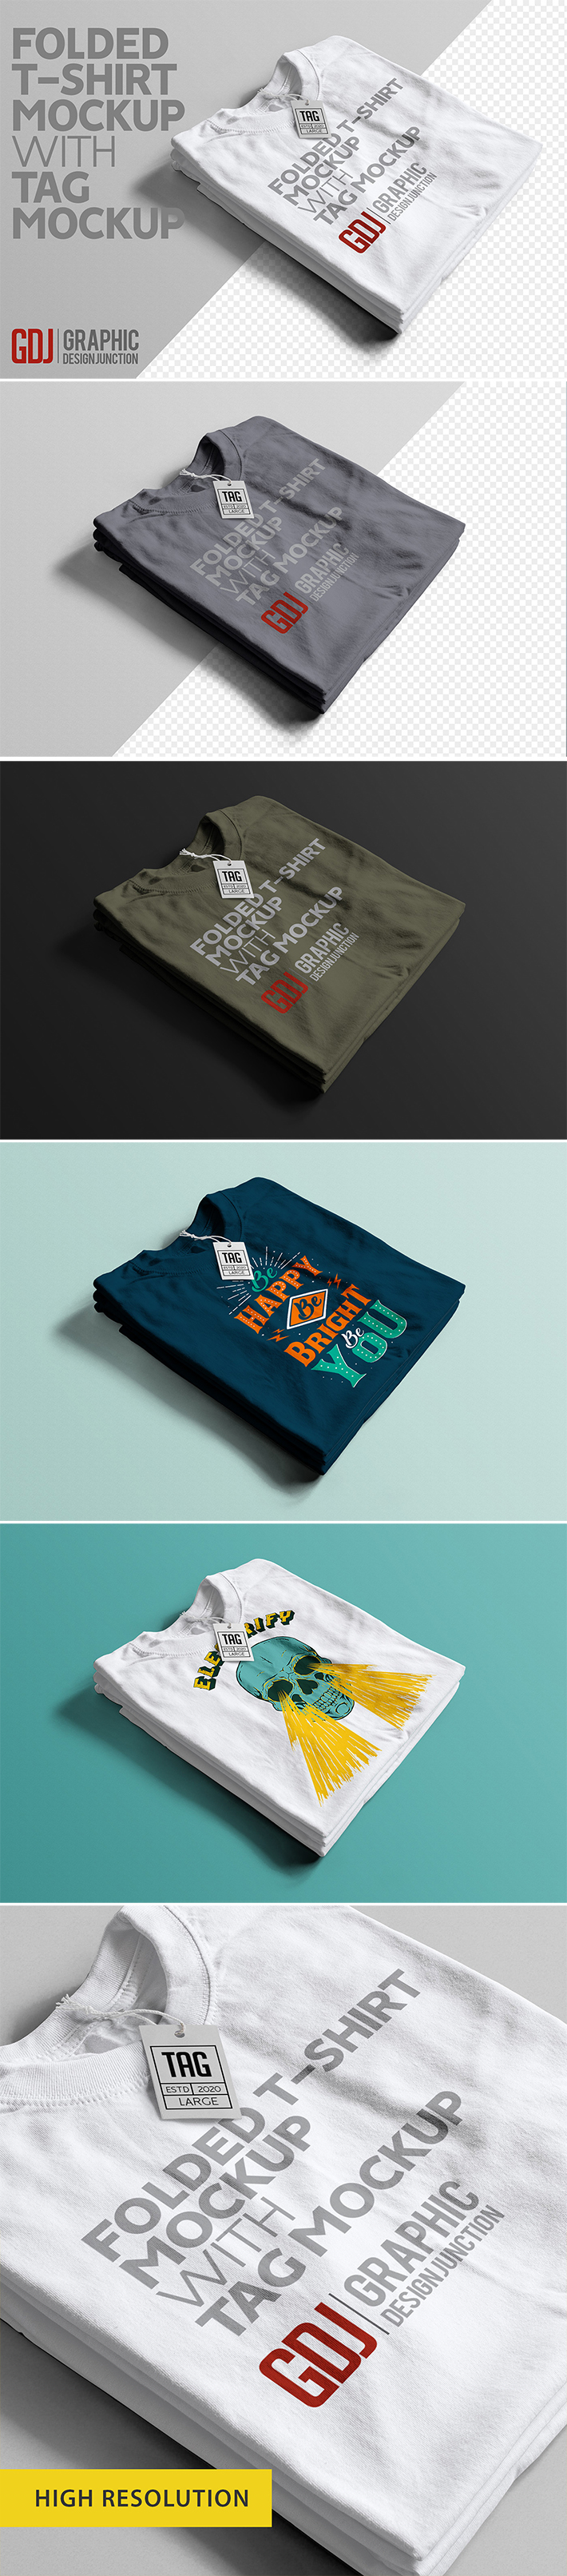 Awesome T-Shirt With Tag Mockup